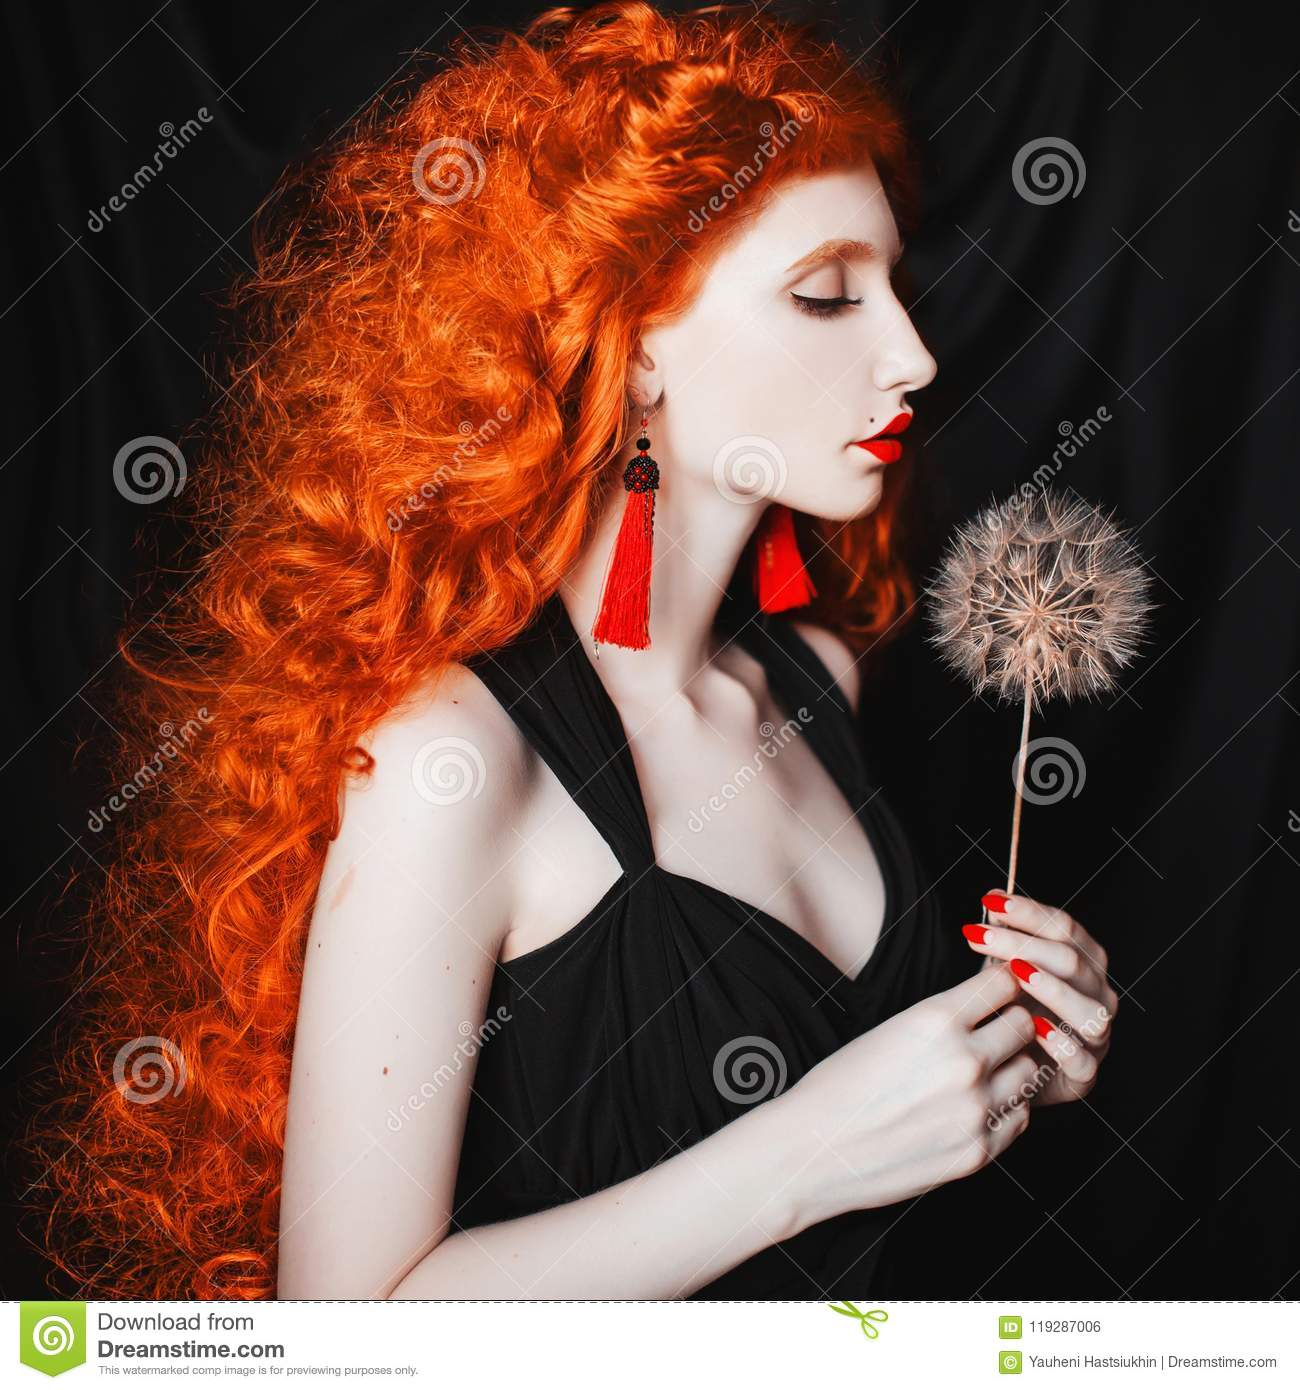 Theme, all dream for monkey sexy dwarf woman is opinion you